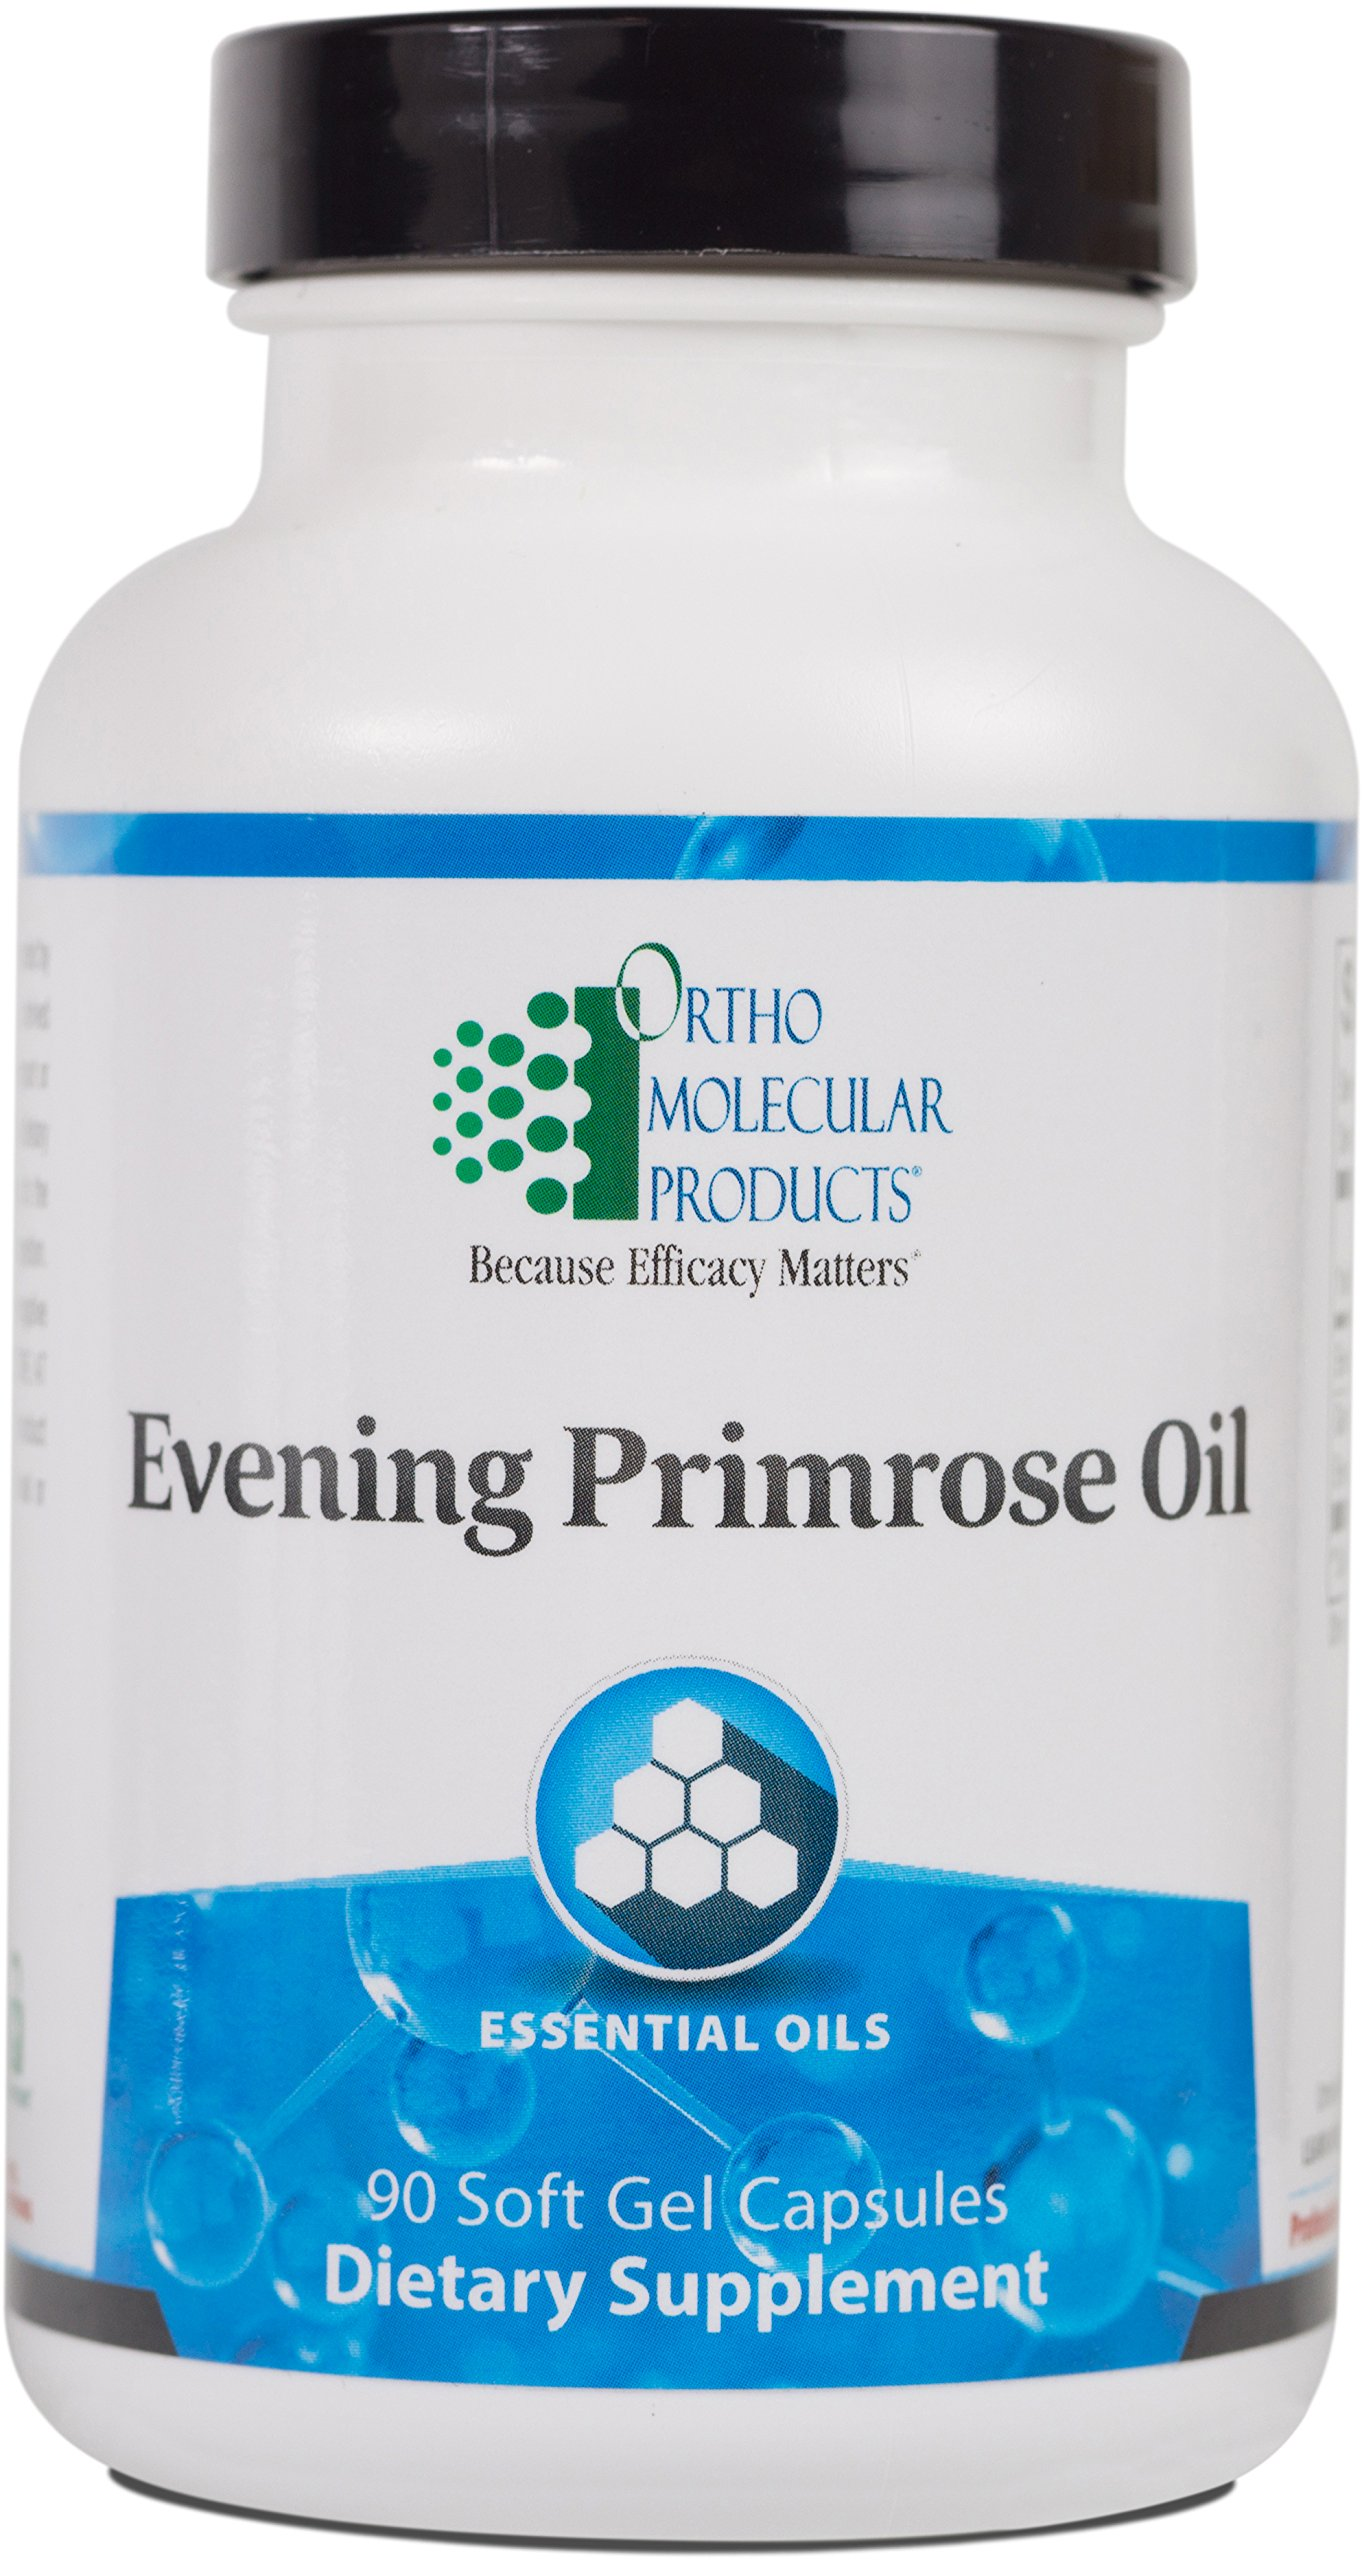 Ortho Molecular - Evening Primrose Oil - 1300 mg - 90 Soft Gel Capsules